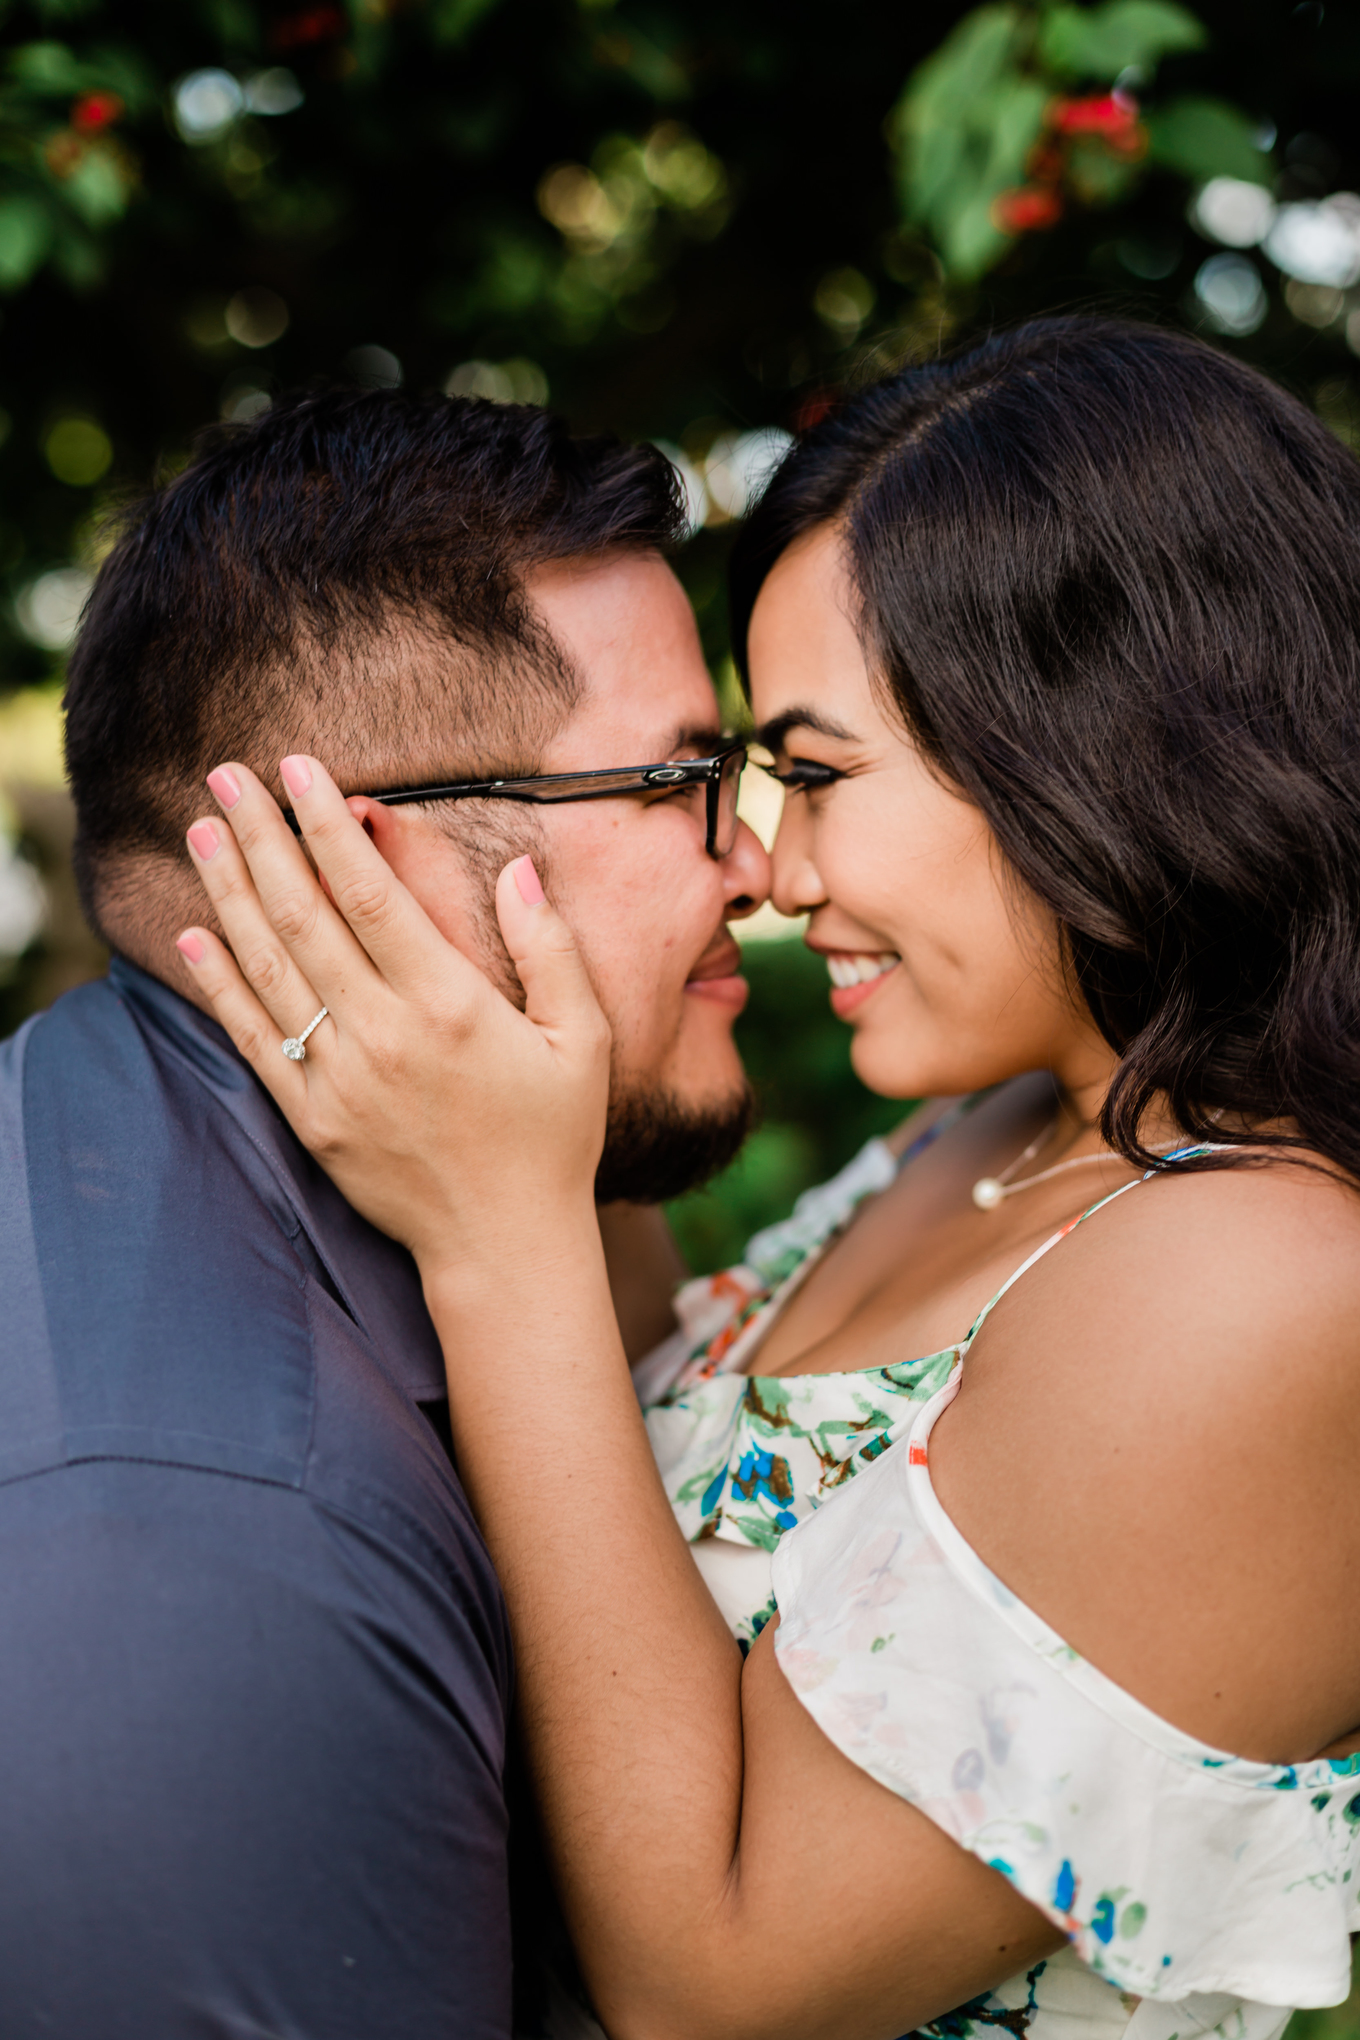 21PIXELS_Guam_Engagement_Photographer159.JPG